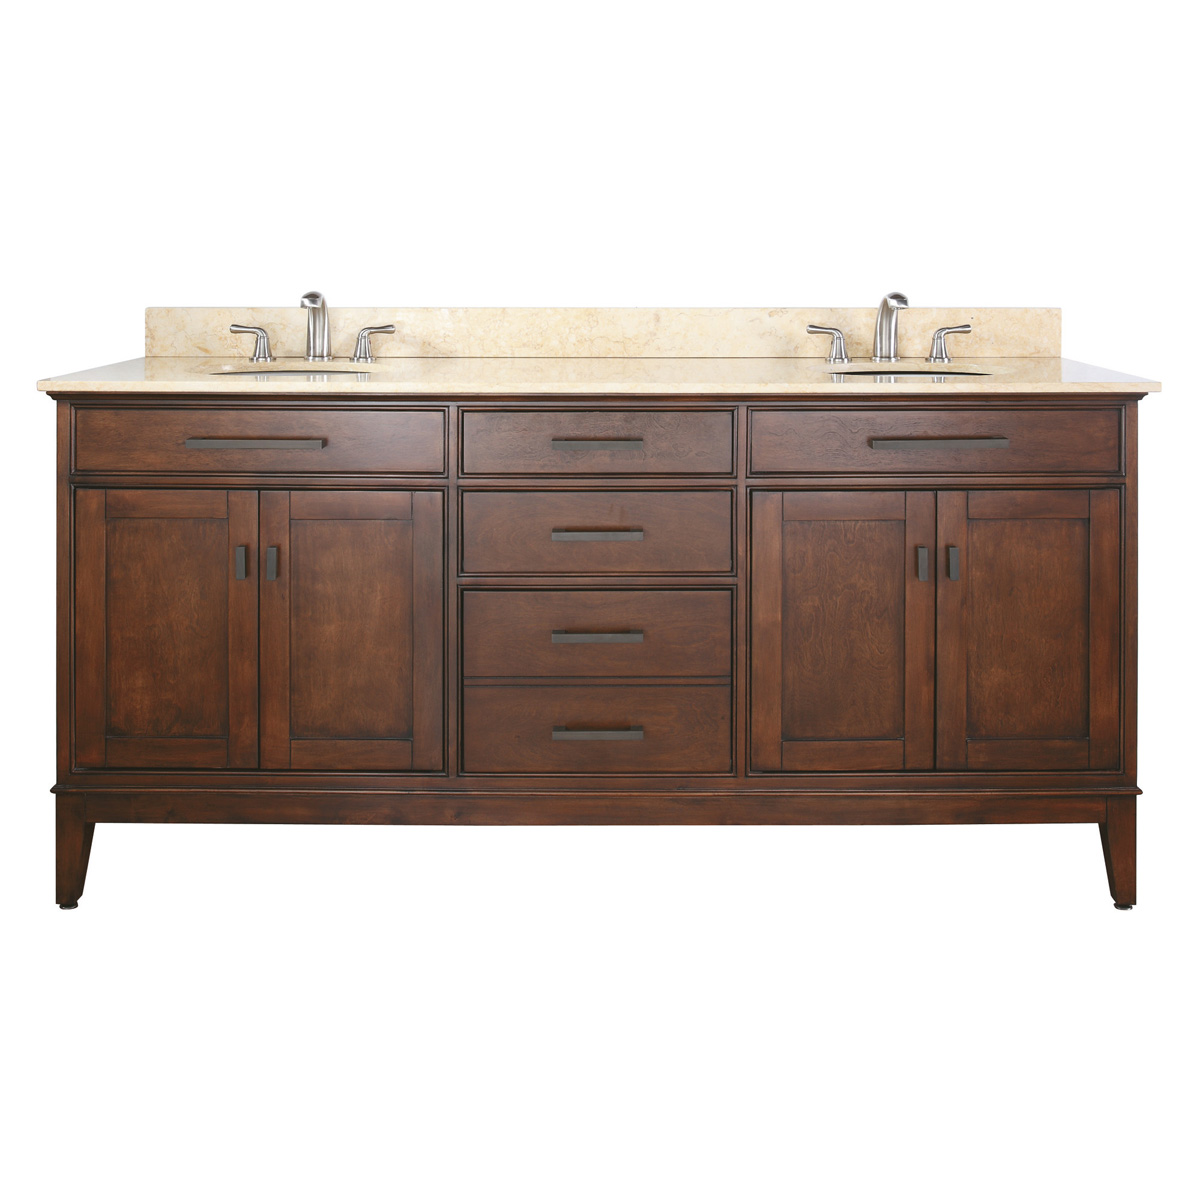 "72"" Marciana Double Vanity in Tobacco"